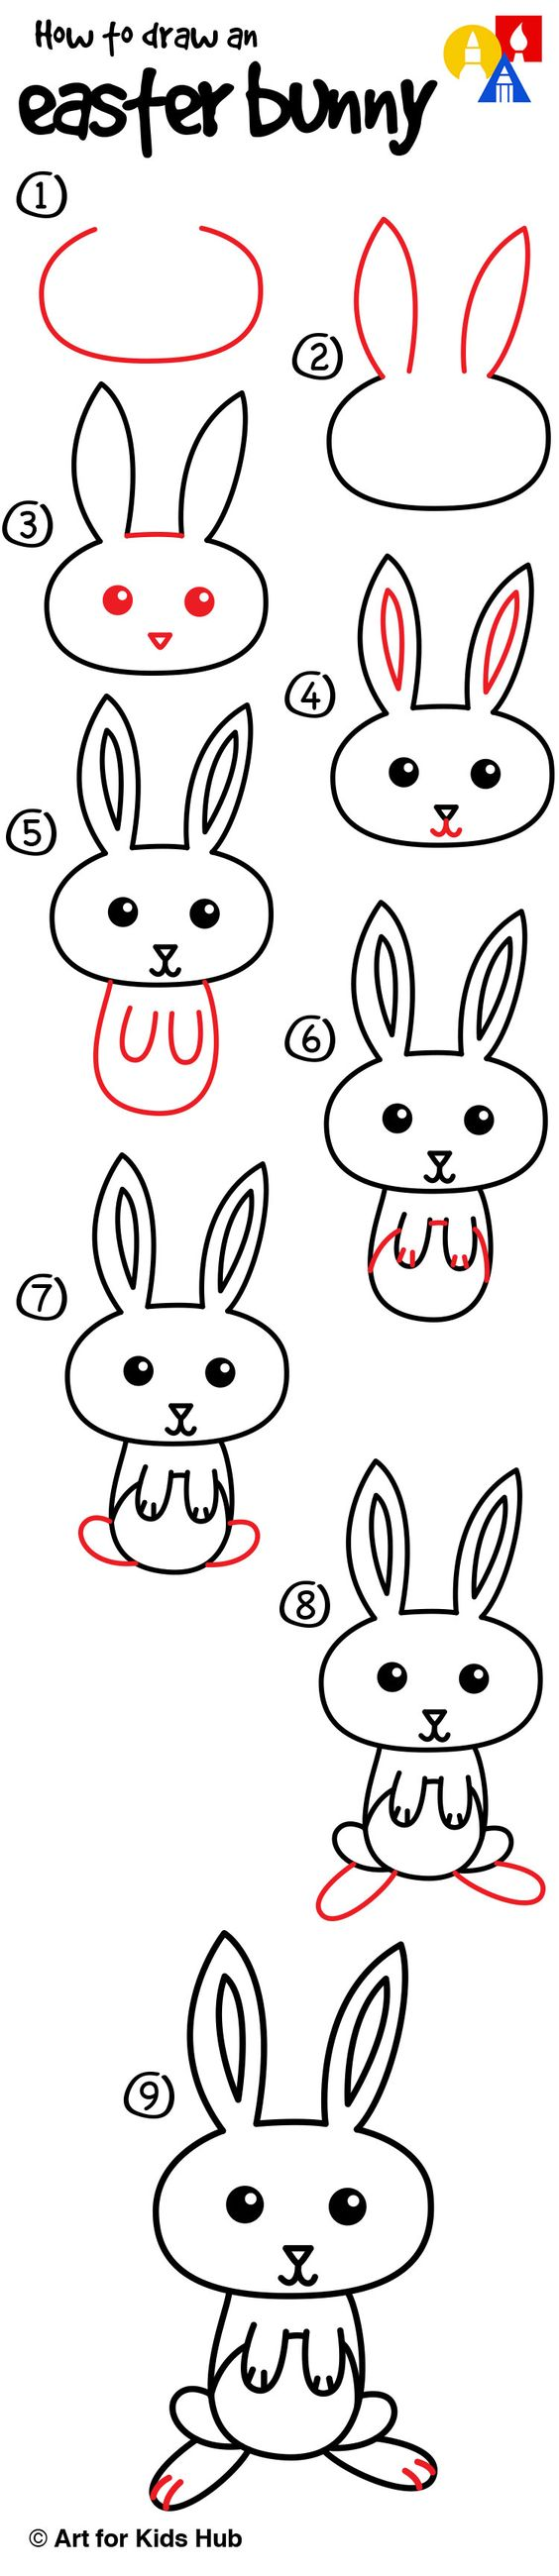 How to draw a cartoon easter bunny art for kids hub for Easy spring pictures to draw